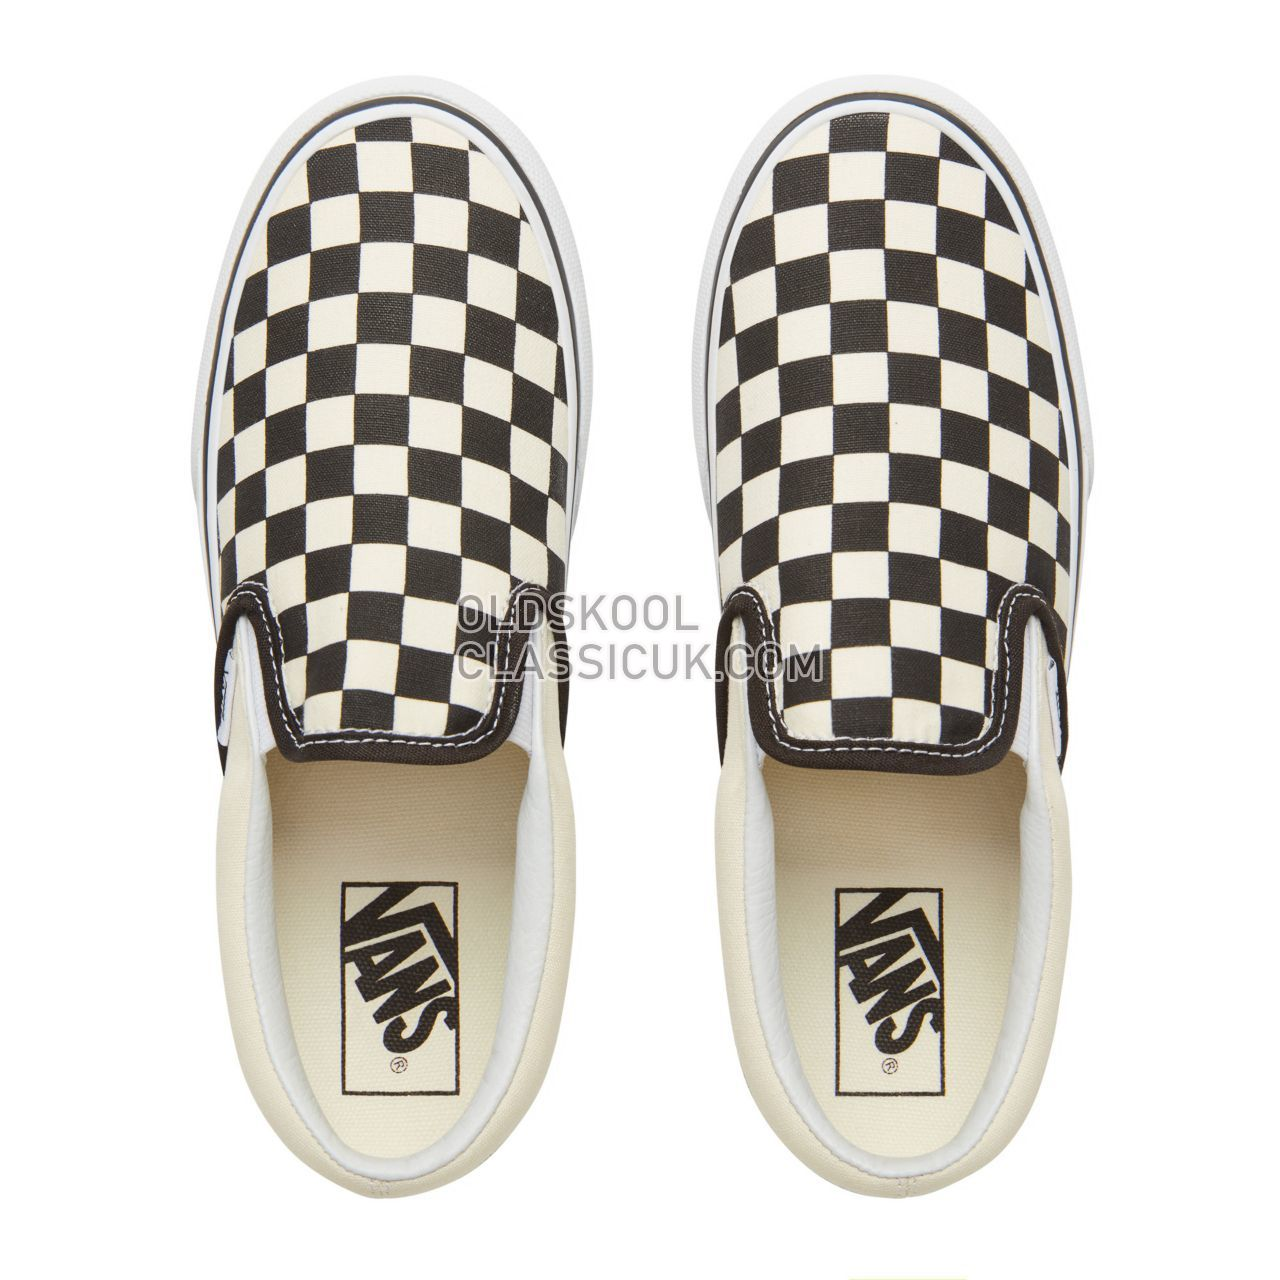 Vans Checkerboard Classic Slip-On Platform Sneakers Womens Black & White Chckerboard-White VN00018EBWW Shoes